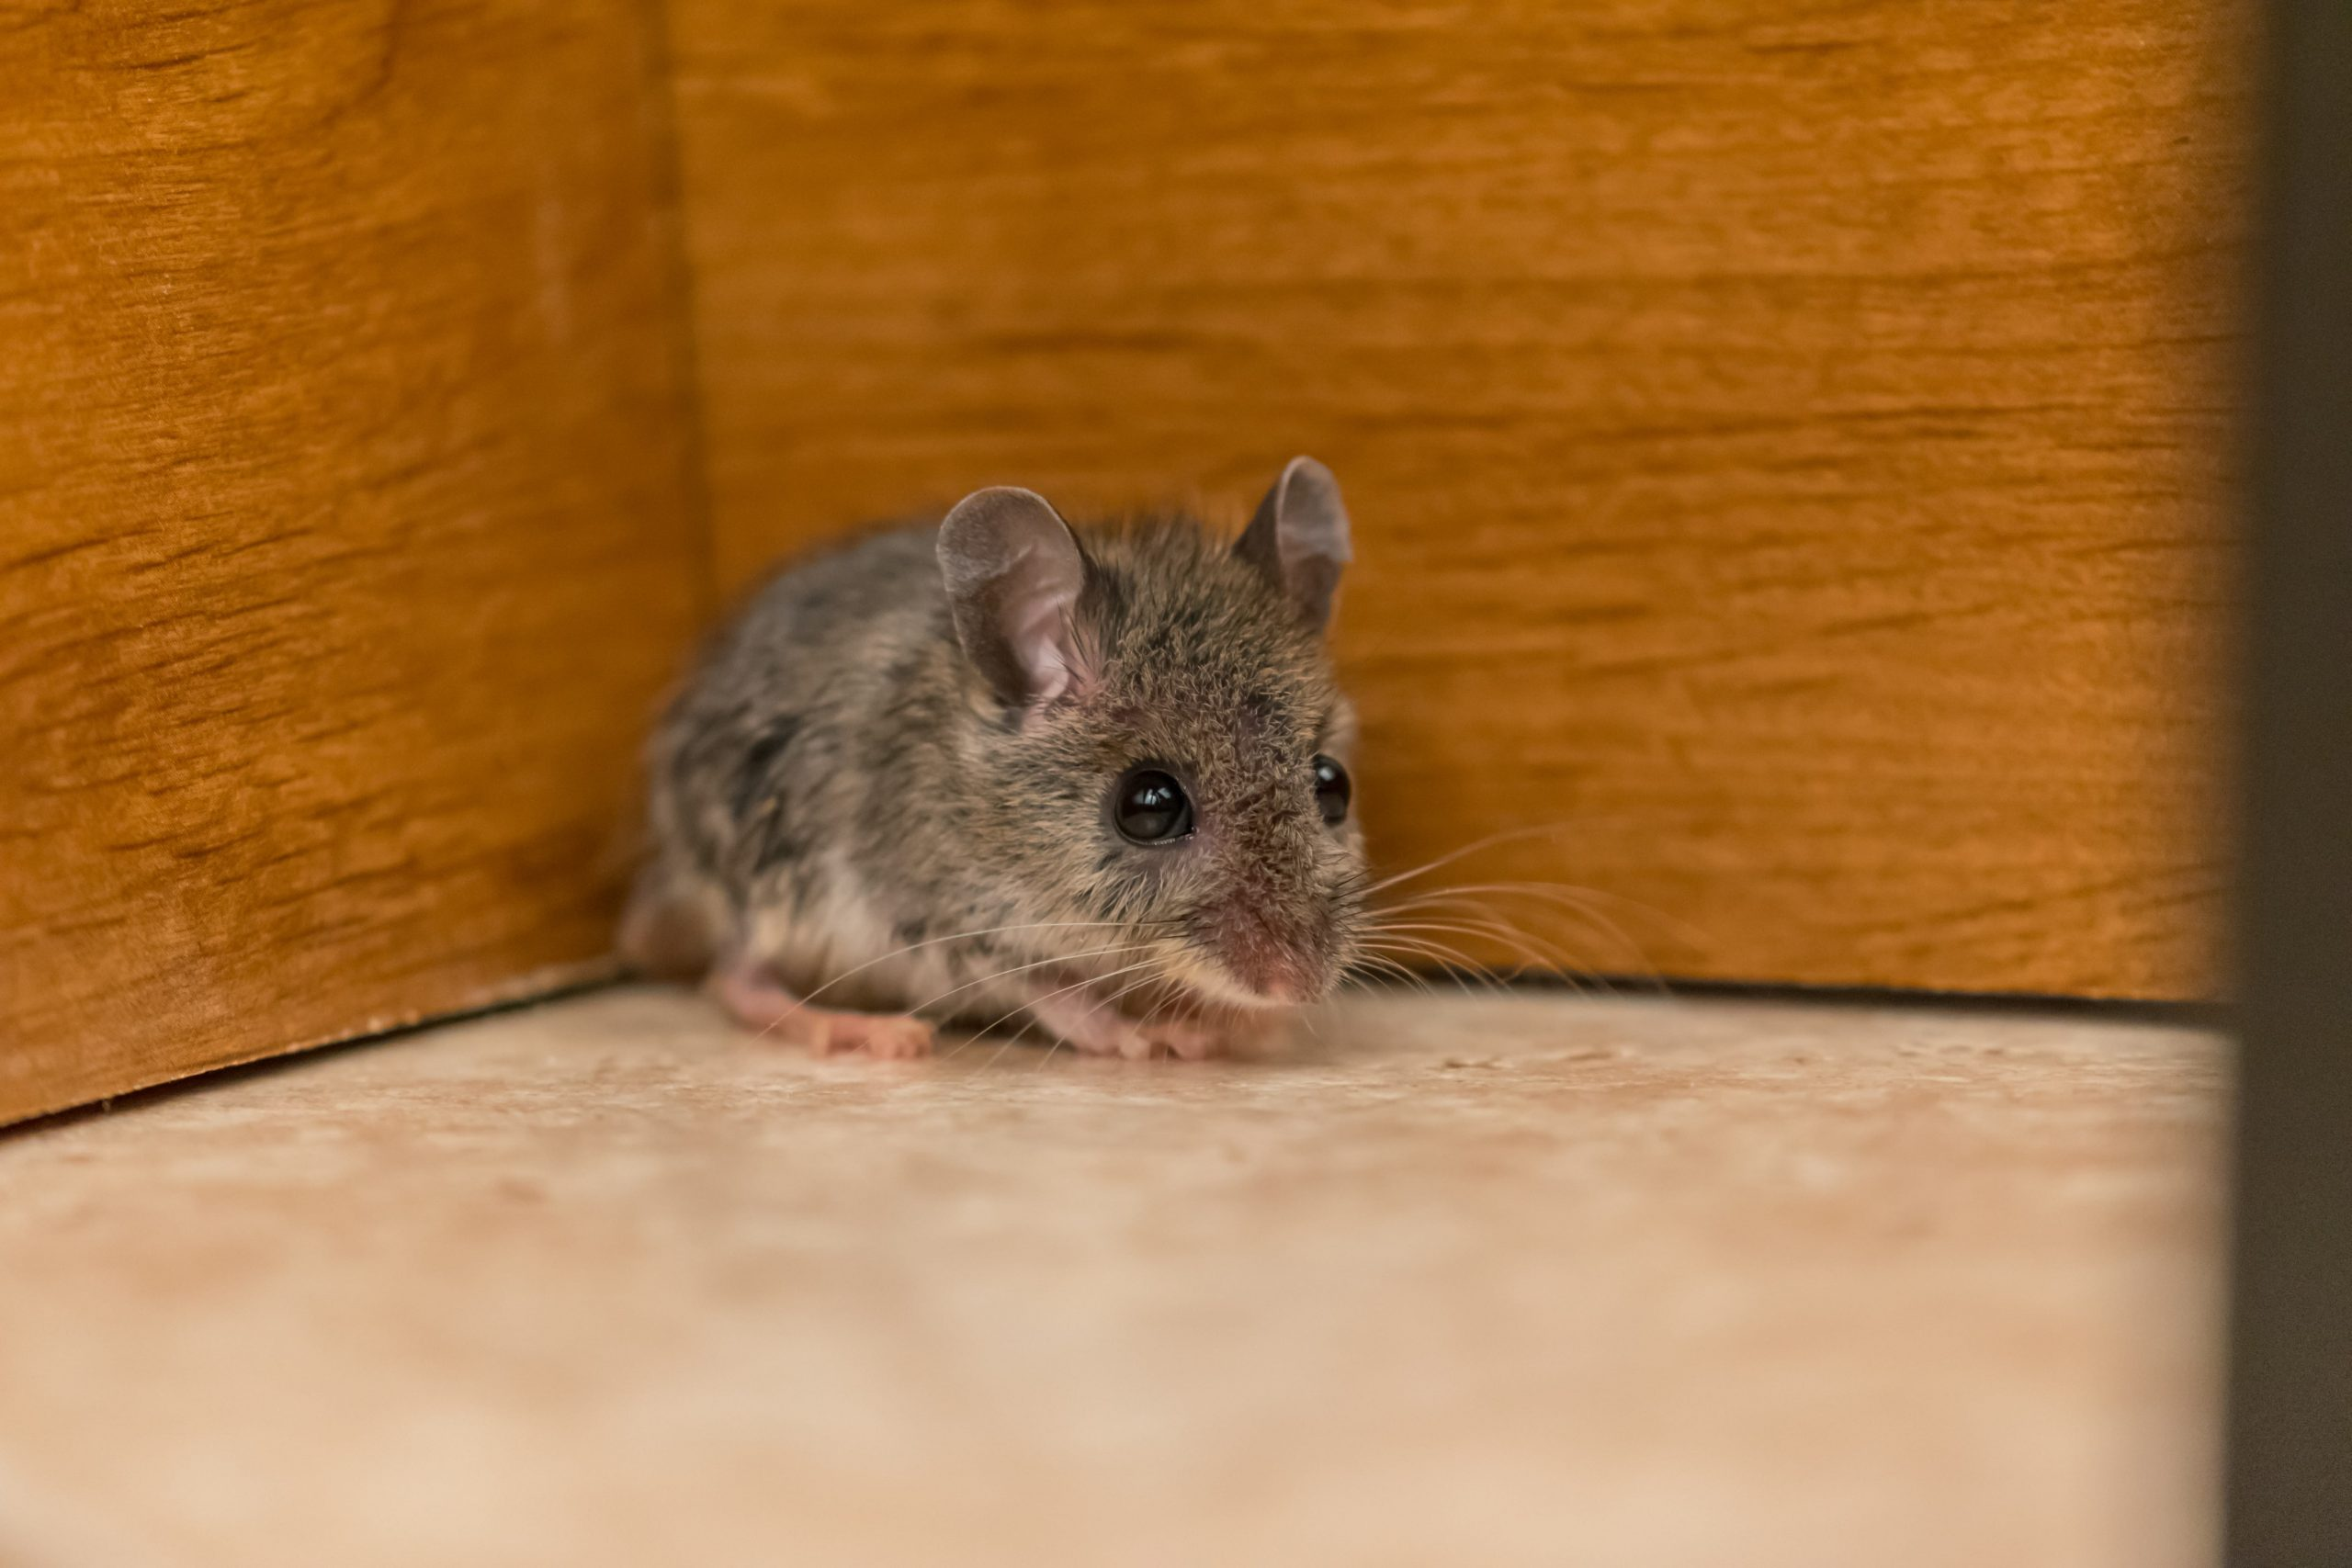 What to do When Finding Rodents in Classrooms